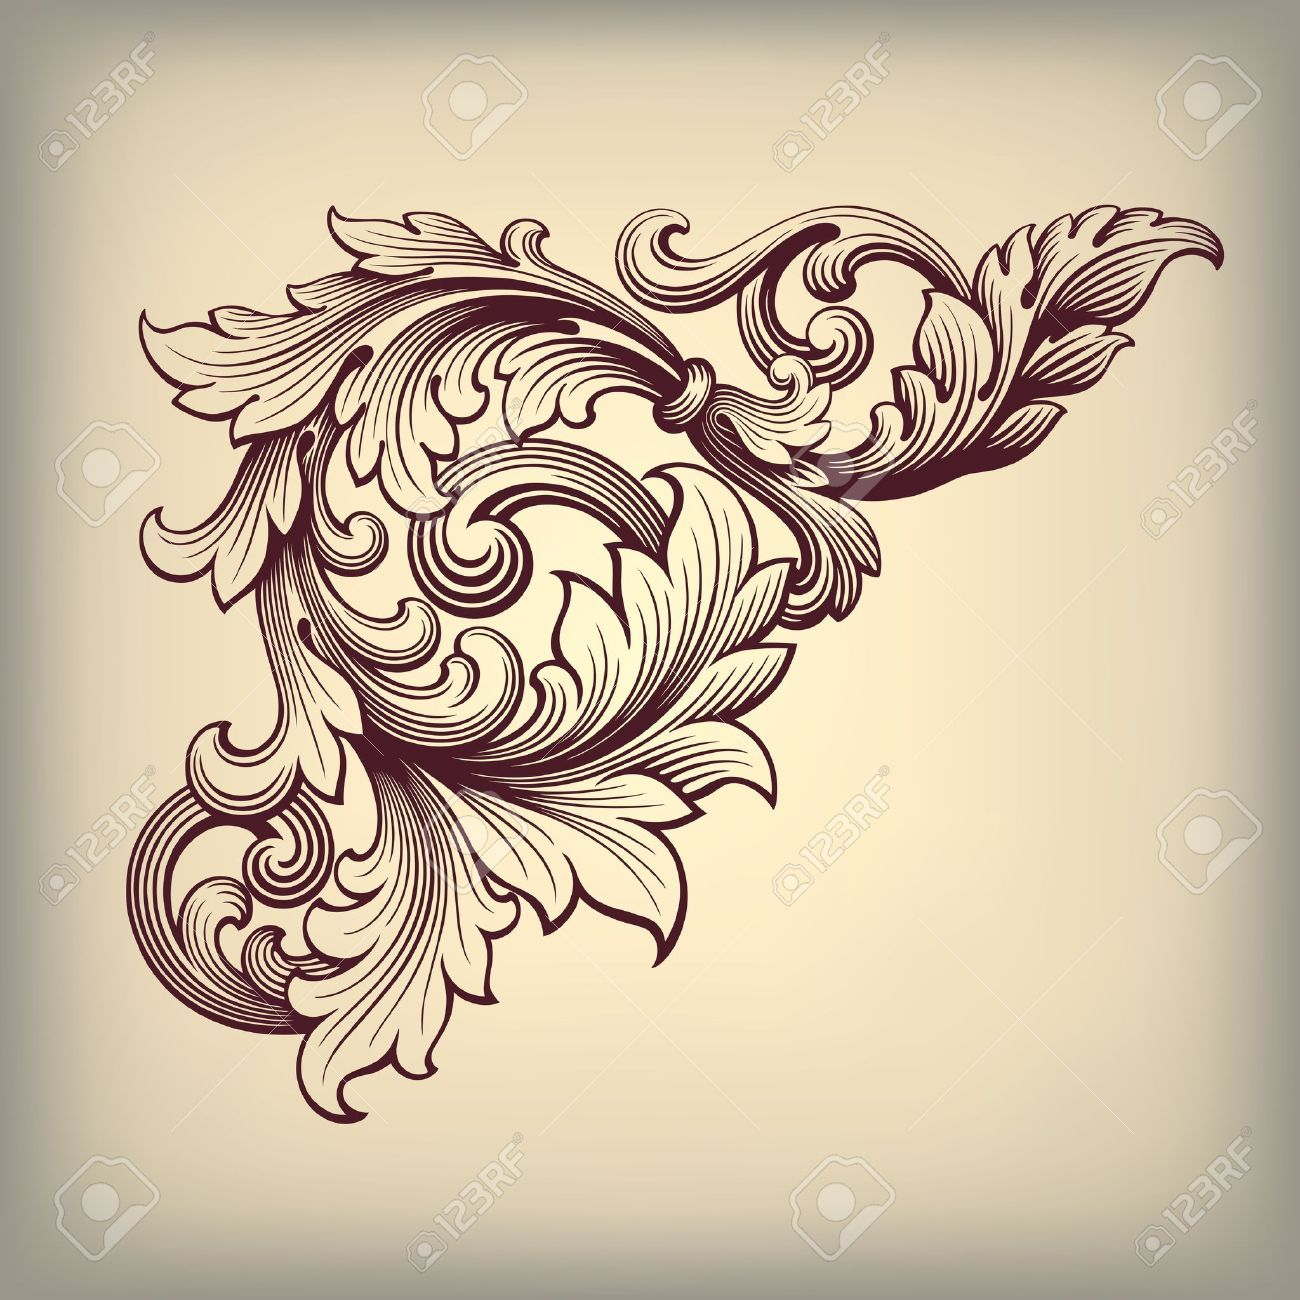 vintage frame tattoo designs. Vector Vintage Baroque Scroll Design Frame Corner Pattern Element Engraving Retro Style Ornament By HiSunnySky, Via Shutterstock Tattoo Designs T